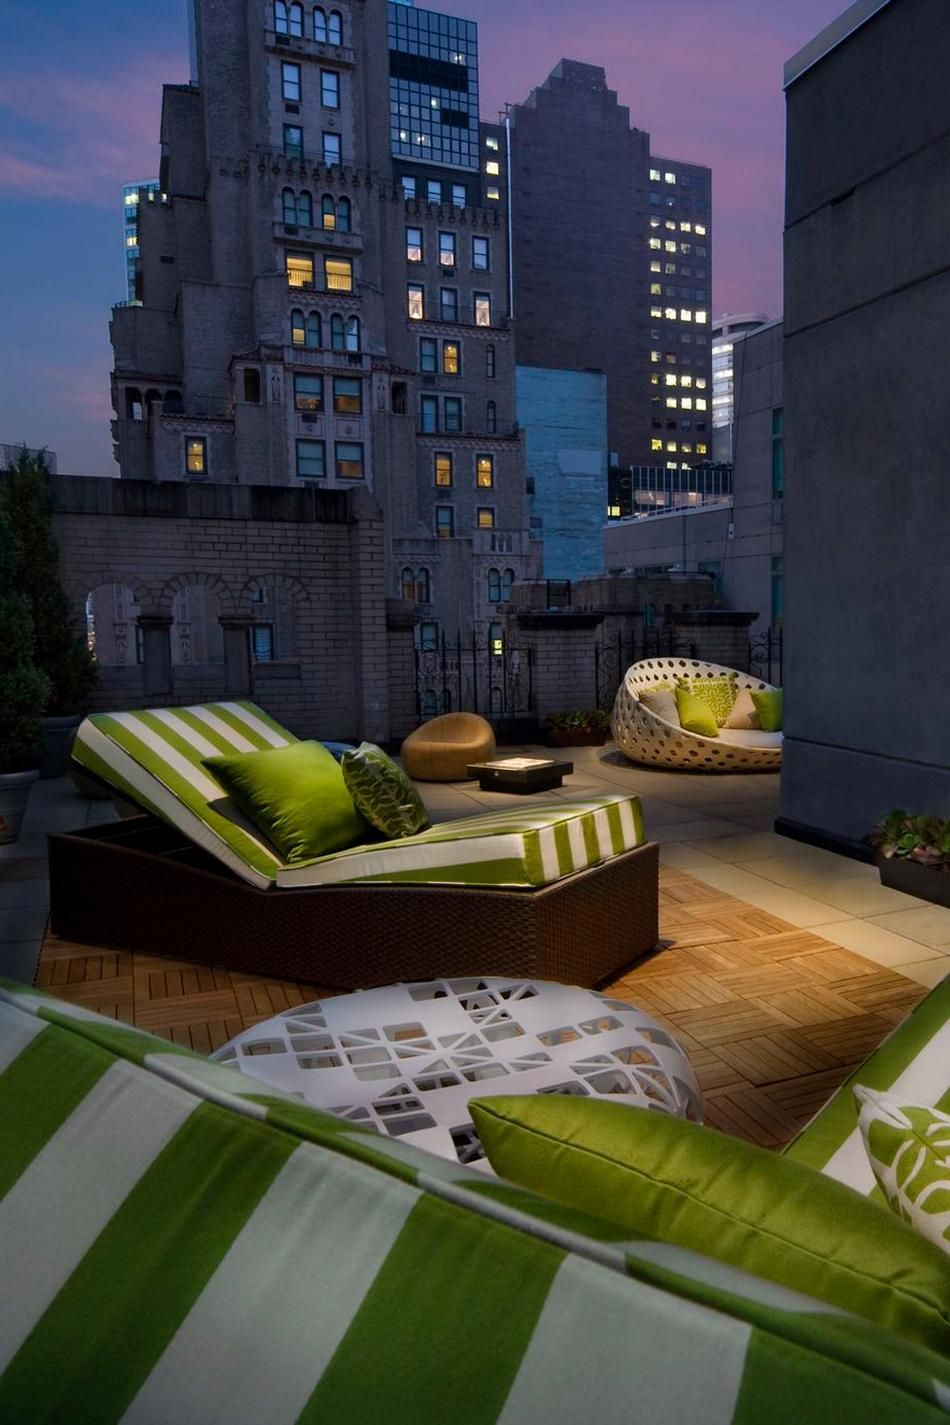 Rooftop patio seating at the w hotel new york on lexington